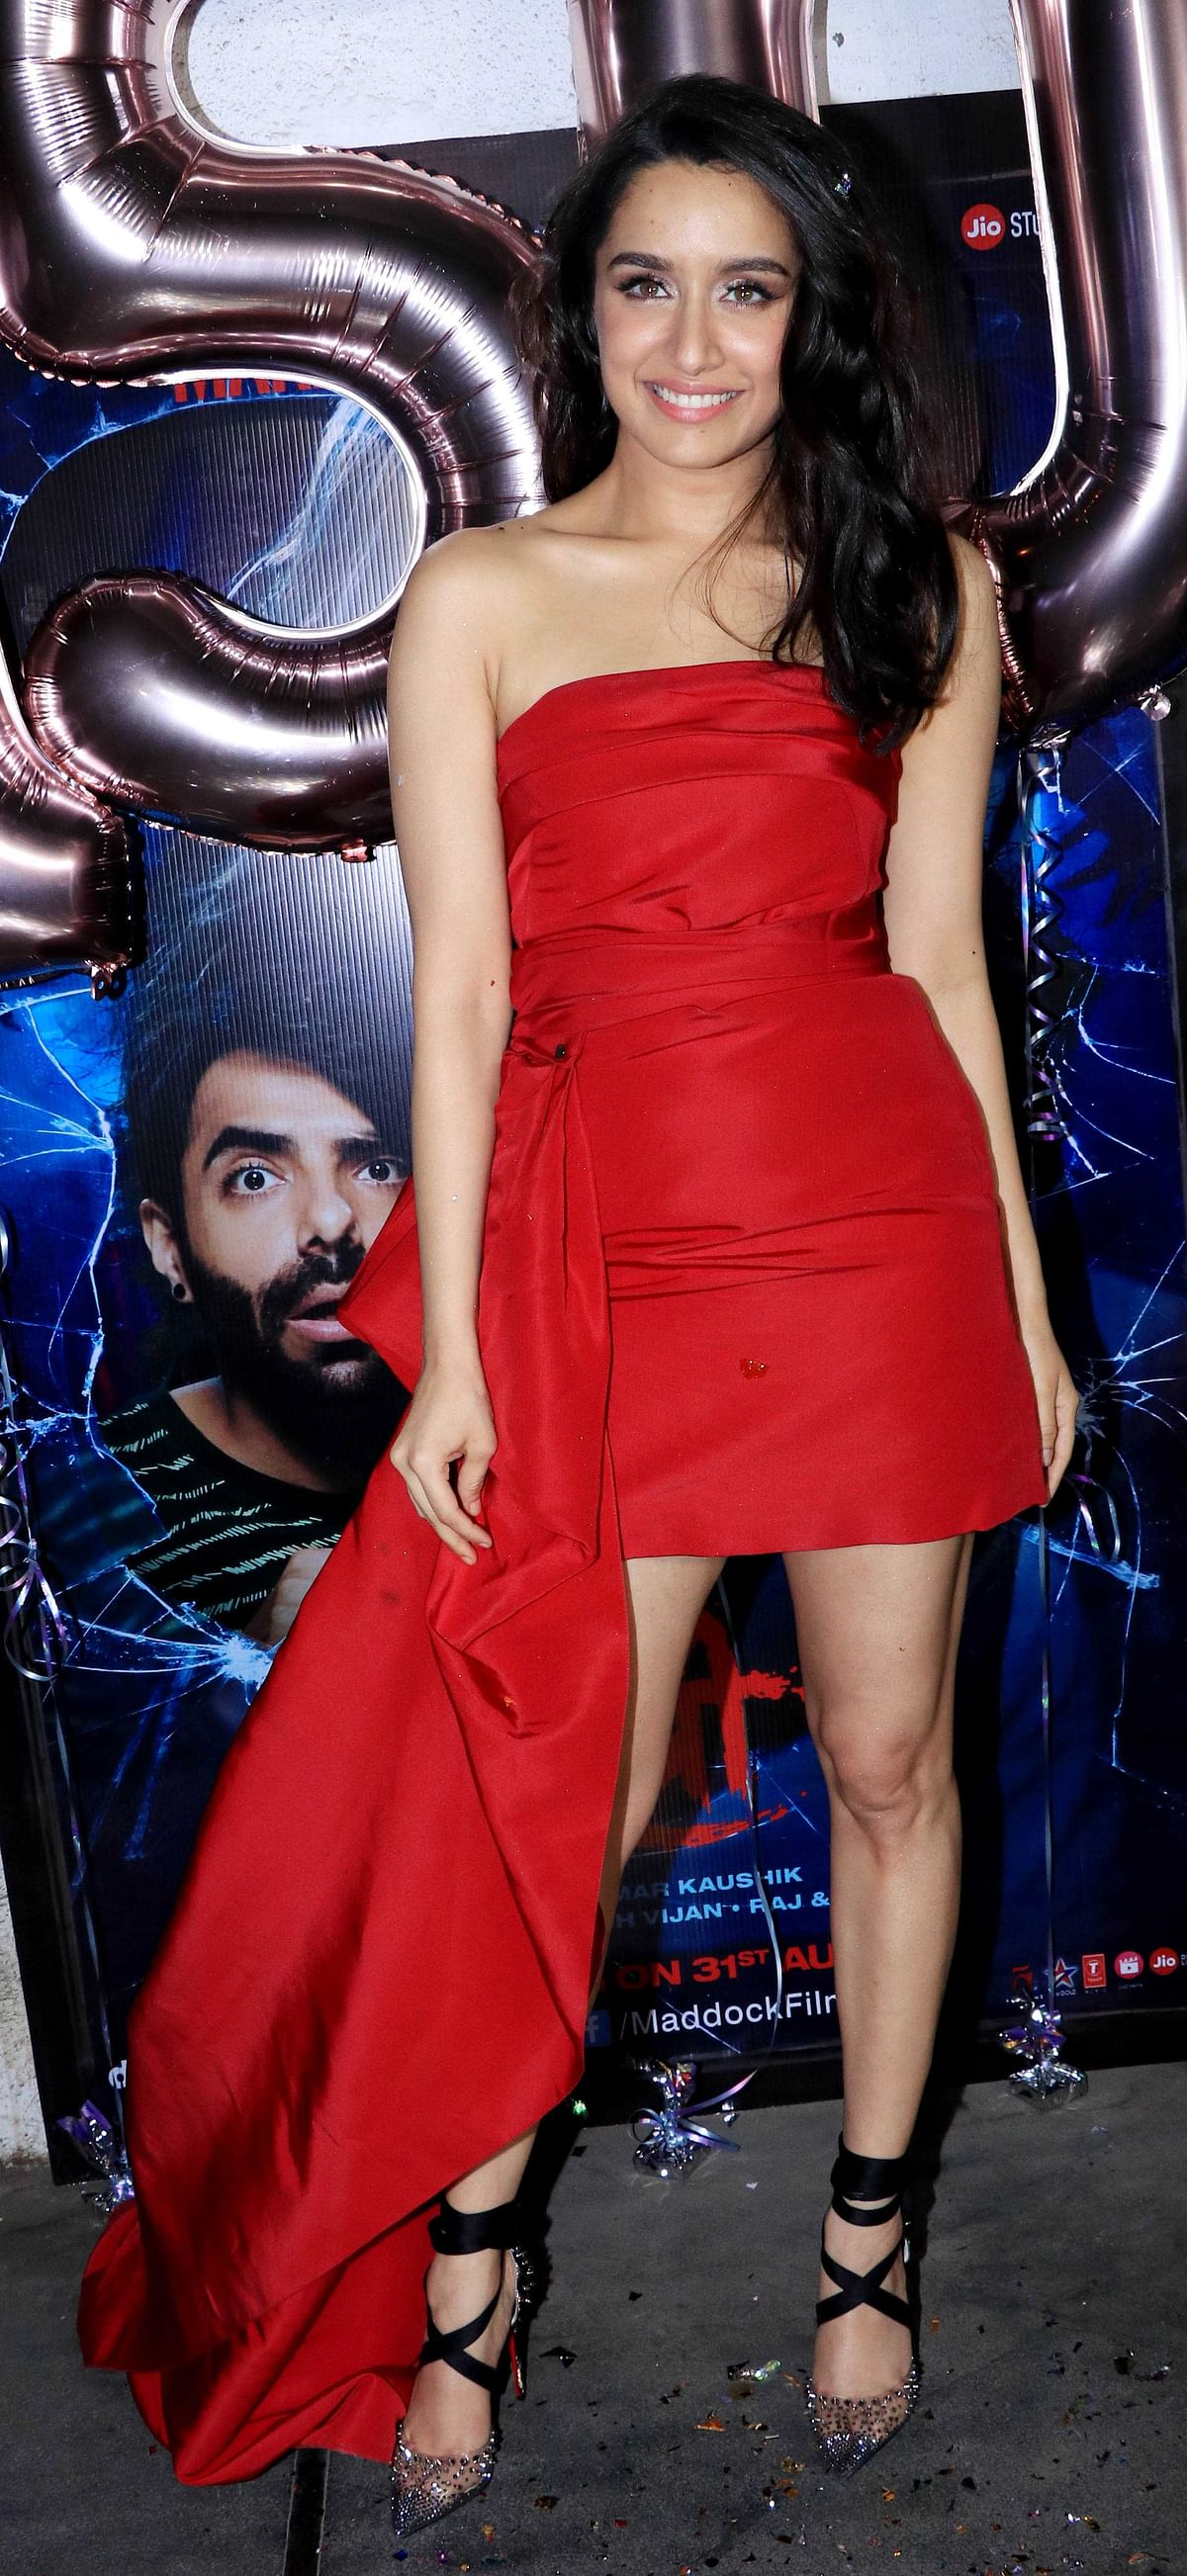 Shraddha Kapoor poses in a glitzy red dress.